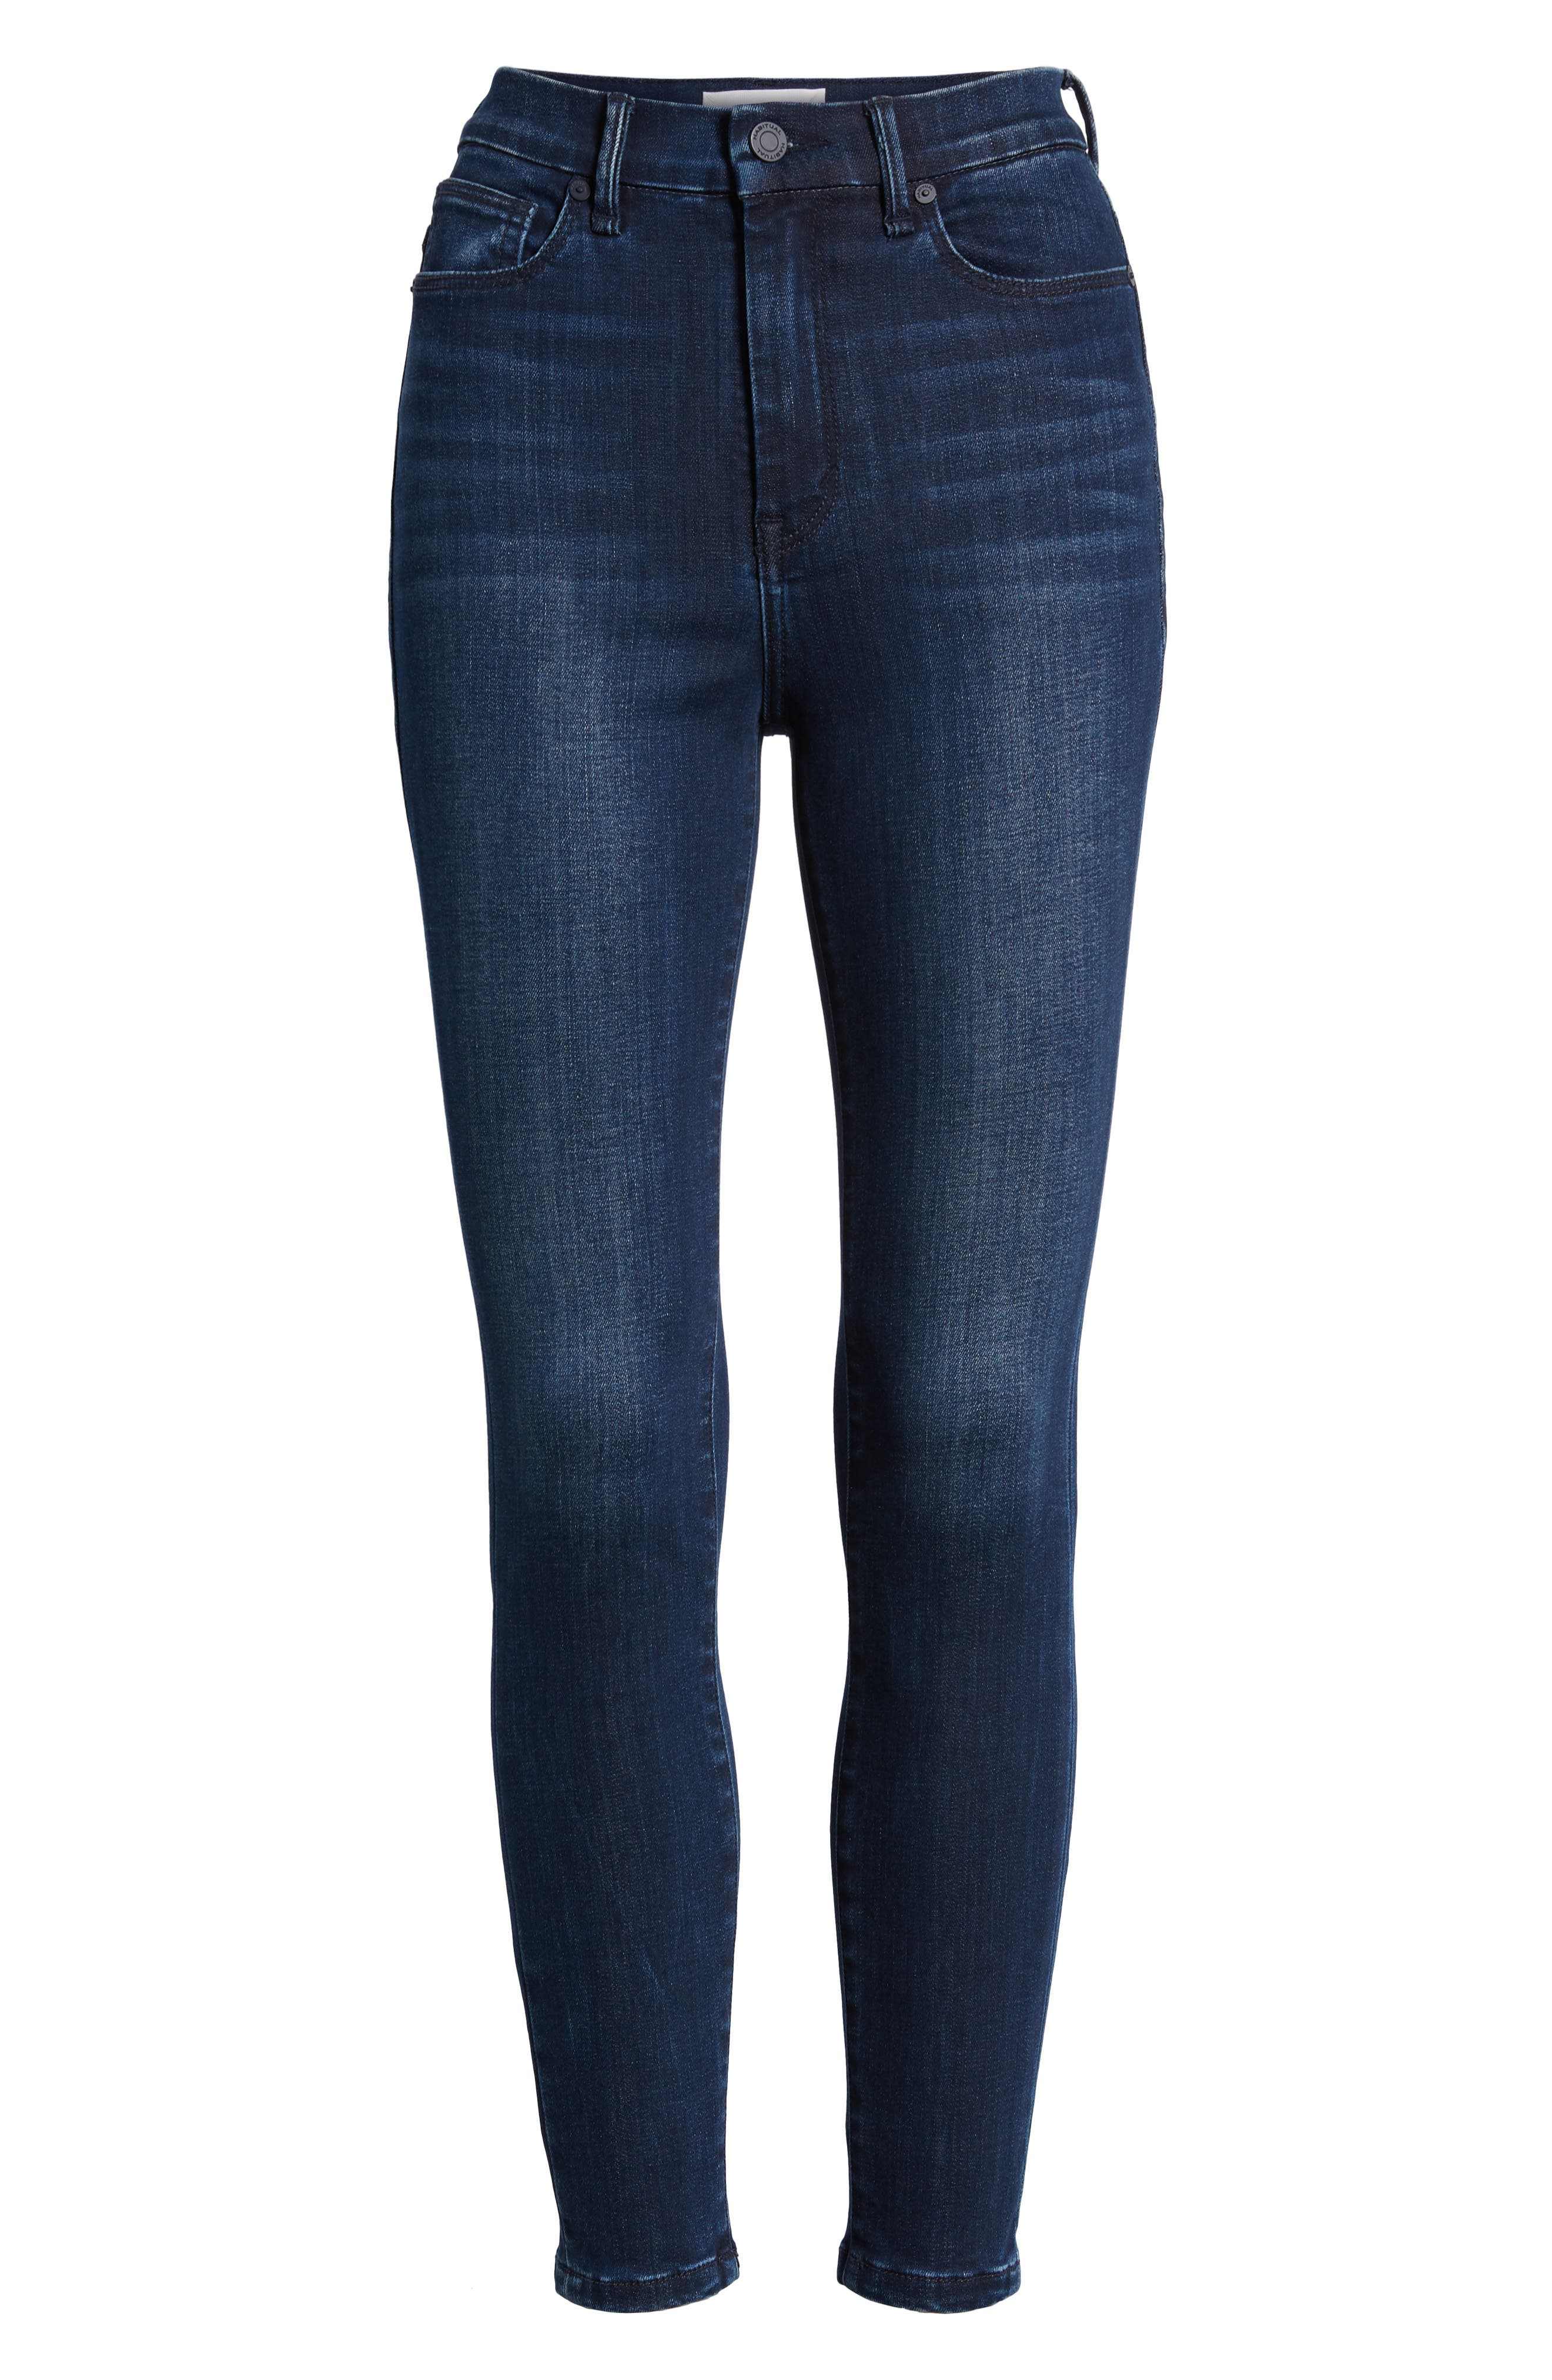 Cressa High Rise Ankle Skinny Jeans,                             Alternate thumbnail 7, color,                             SUGAR MAPLE